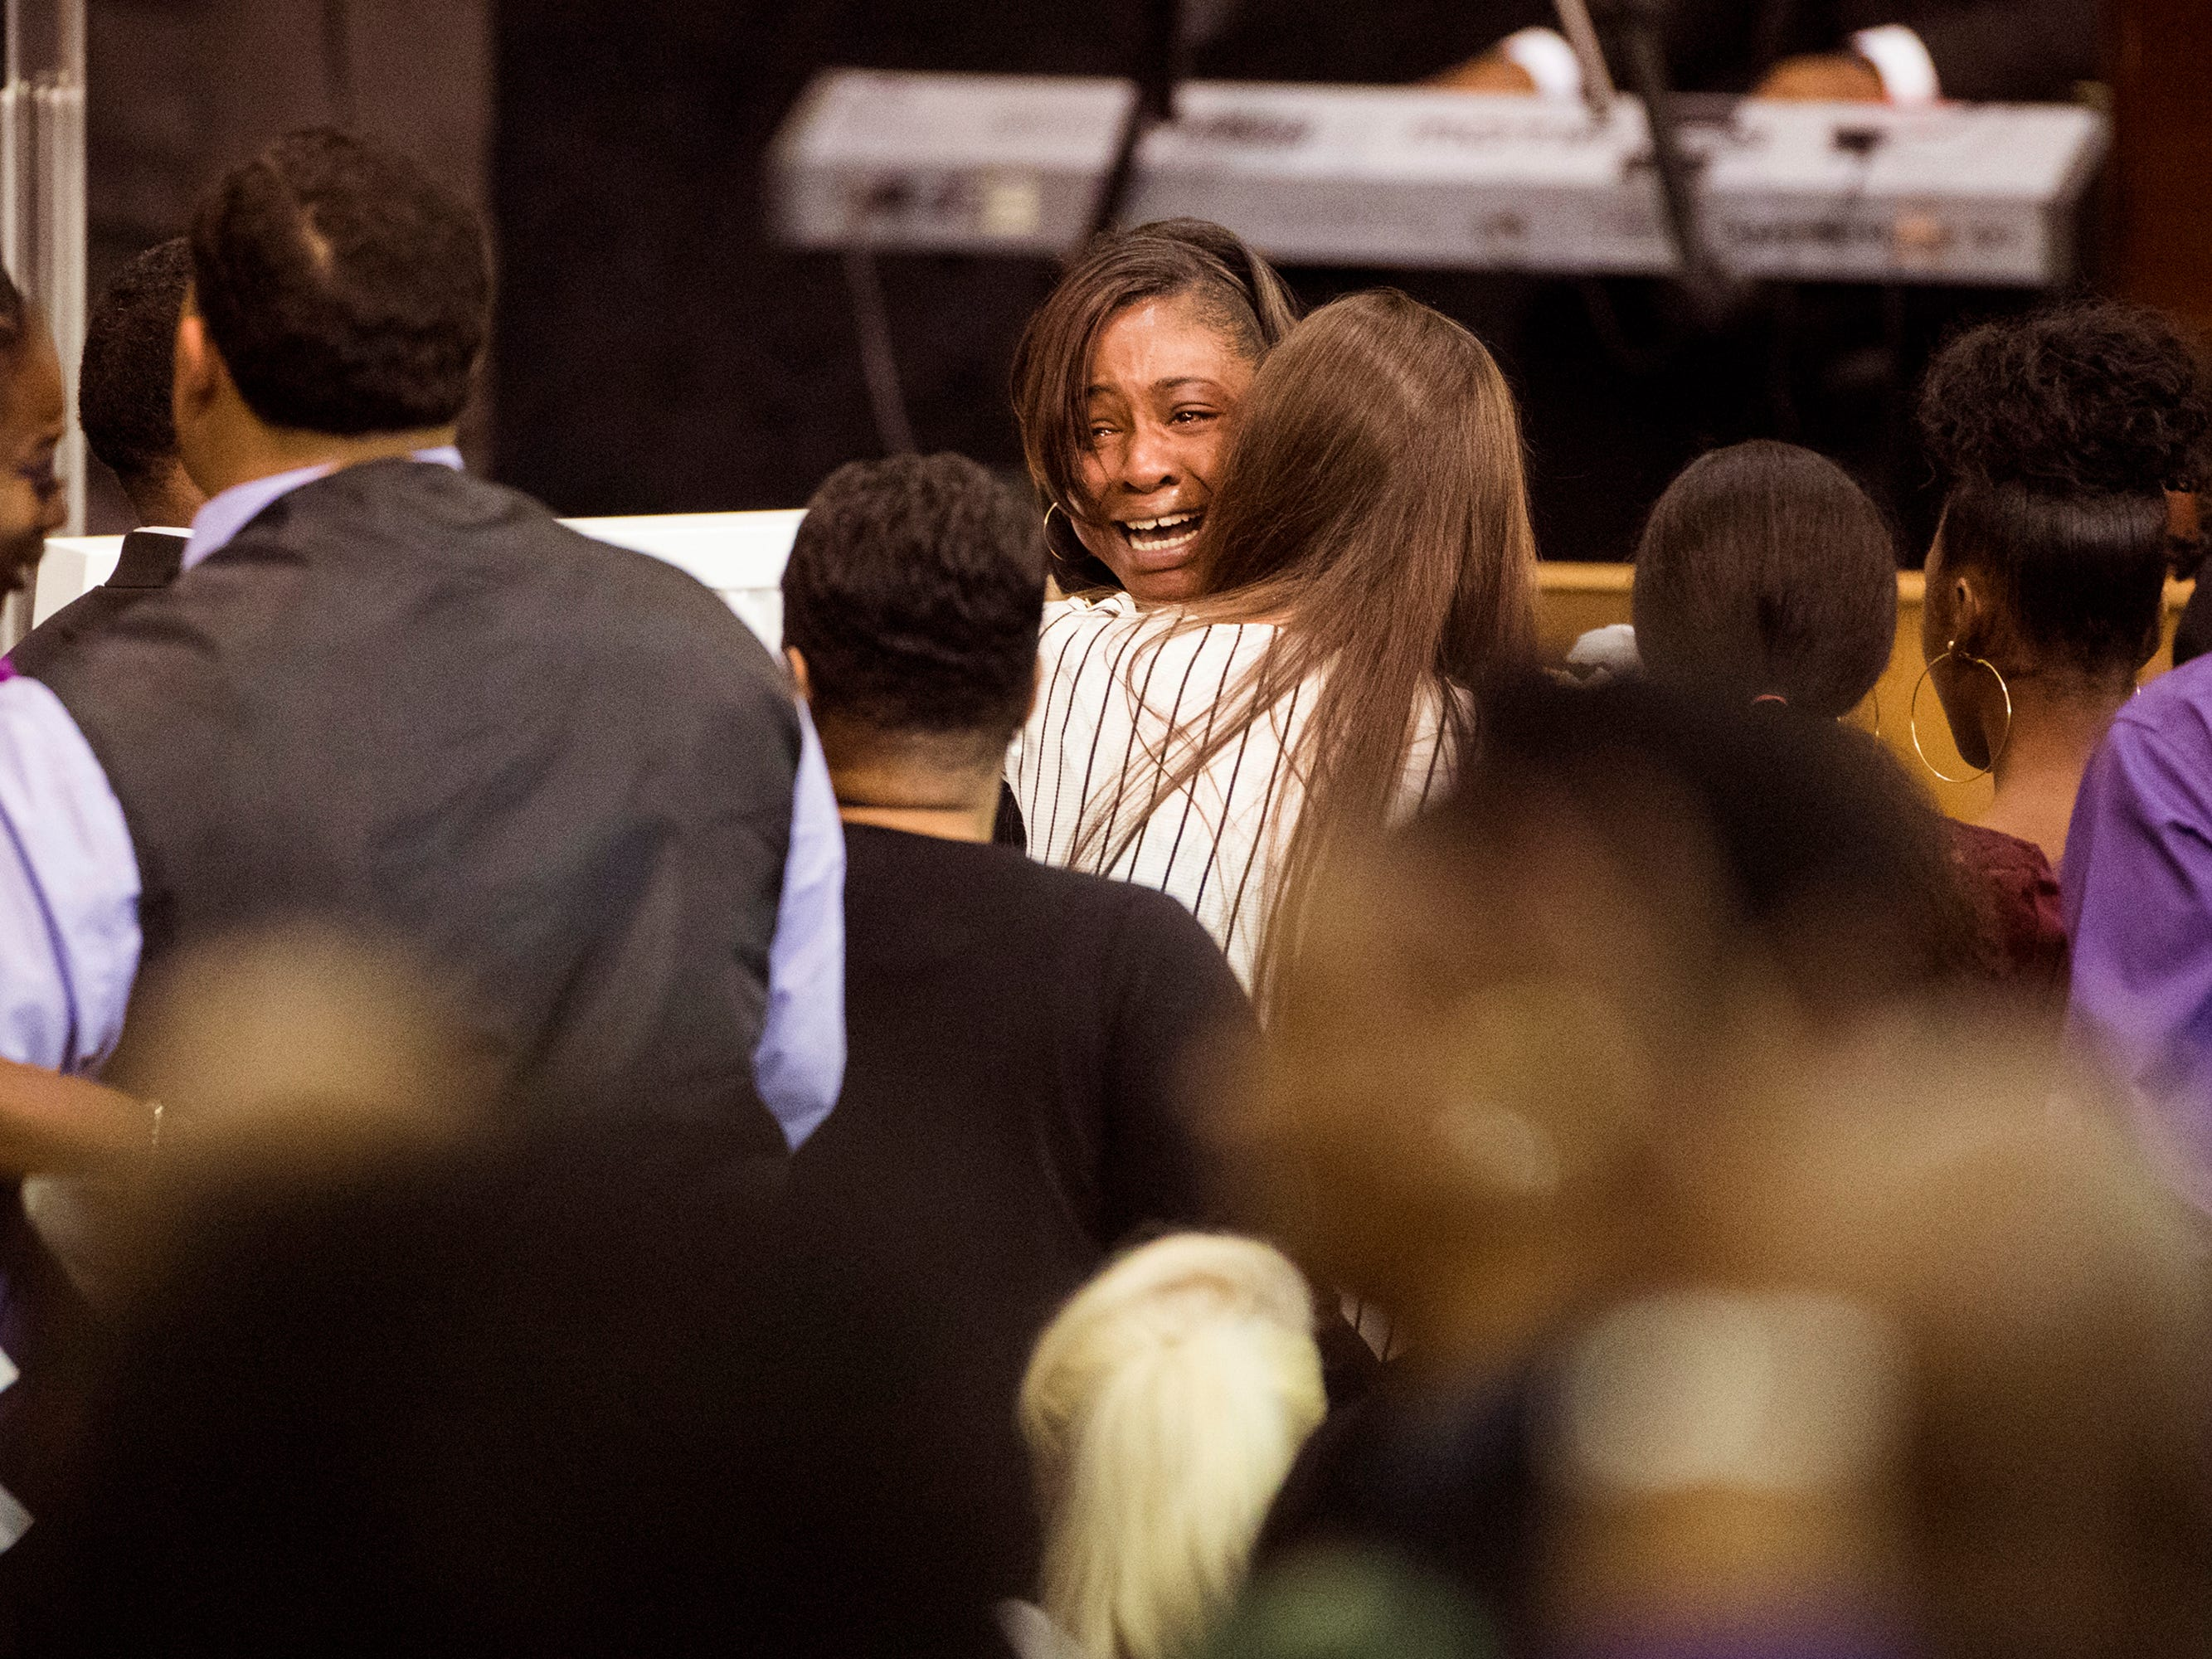 LaPorsha Washington, mother of Jazmine Barnes cries by the casket of her daughter during a memorial service.